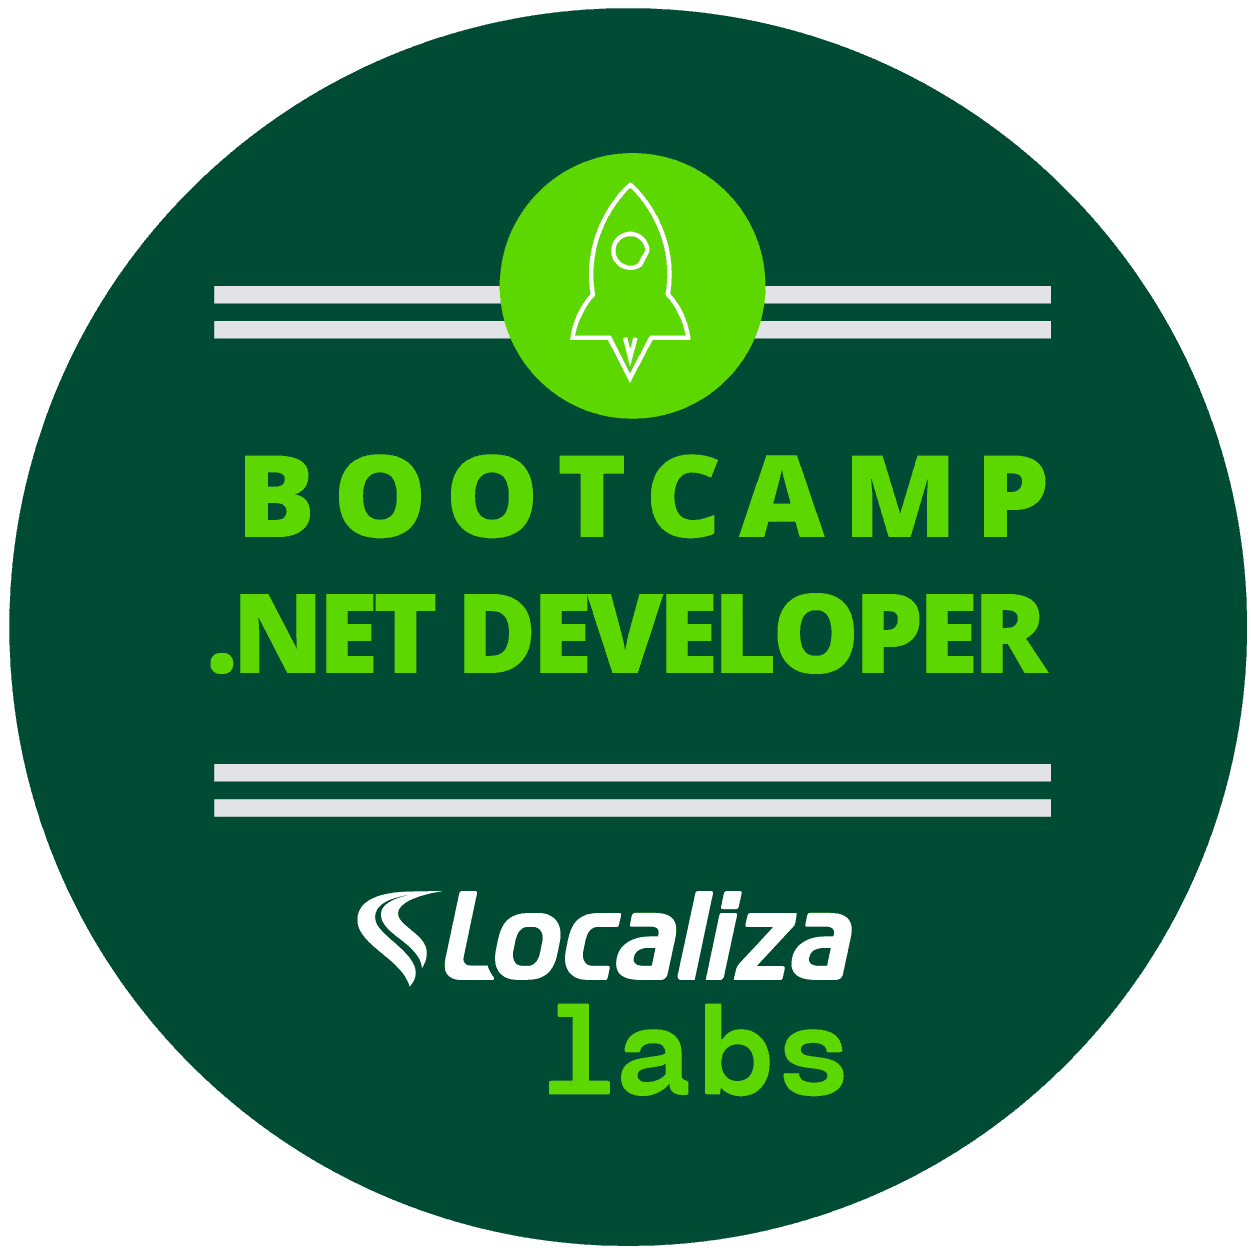 Digital Innovation One | LocalizaLabs .NET Developer